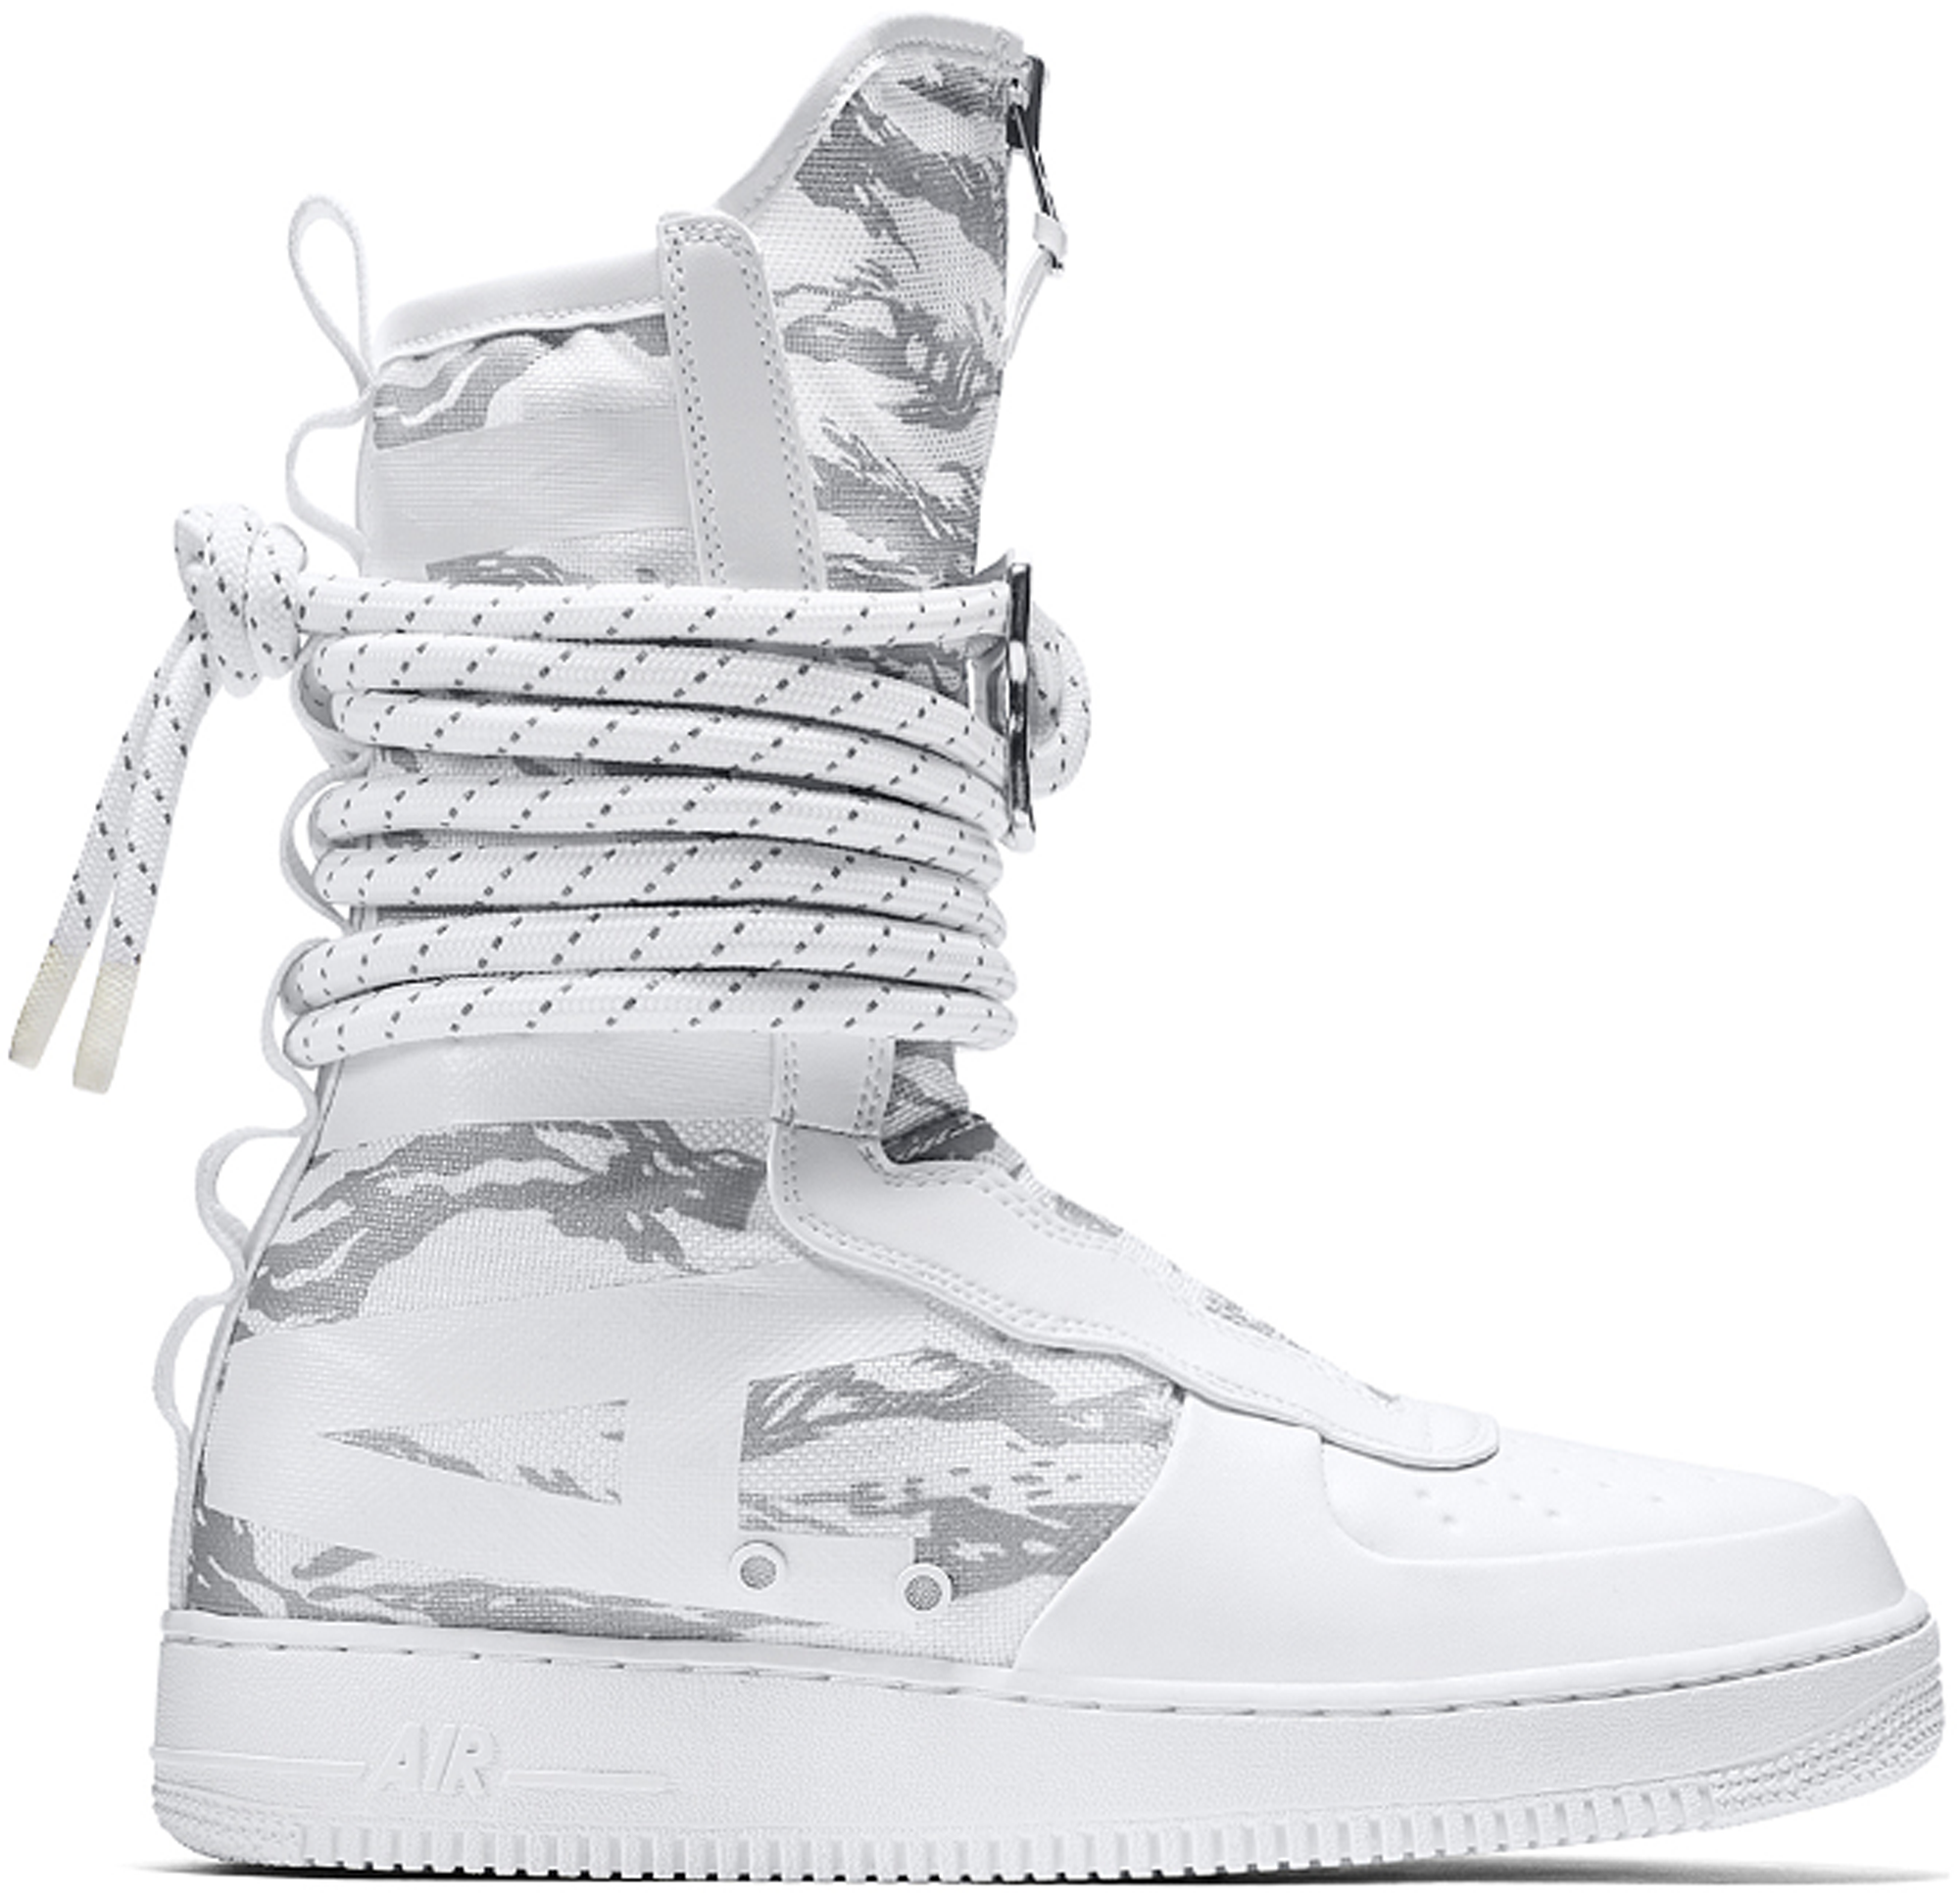 Nike SF Air Force 1 High Winter Camo